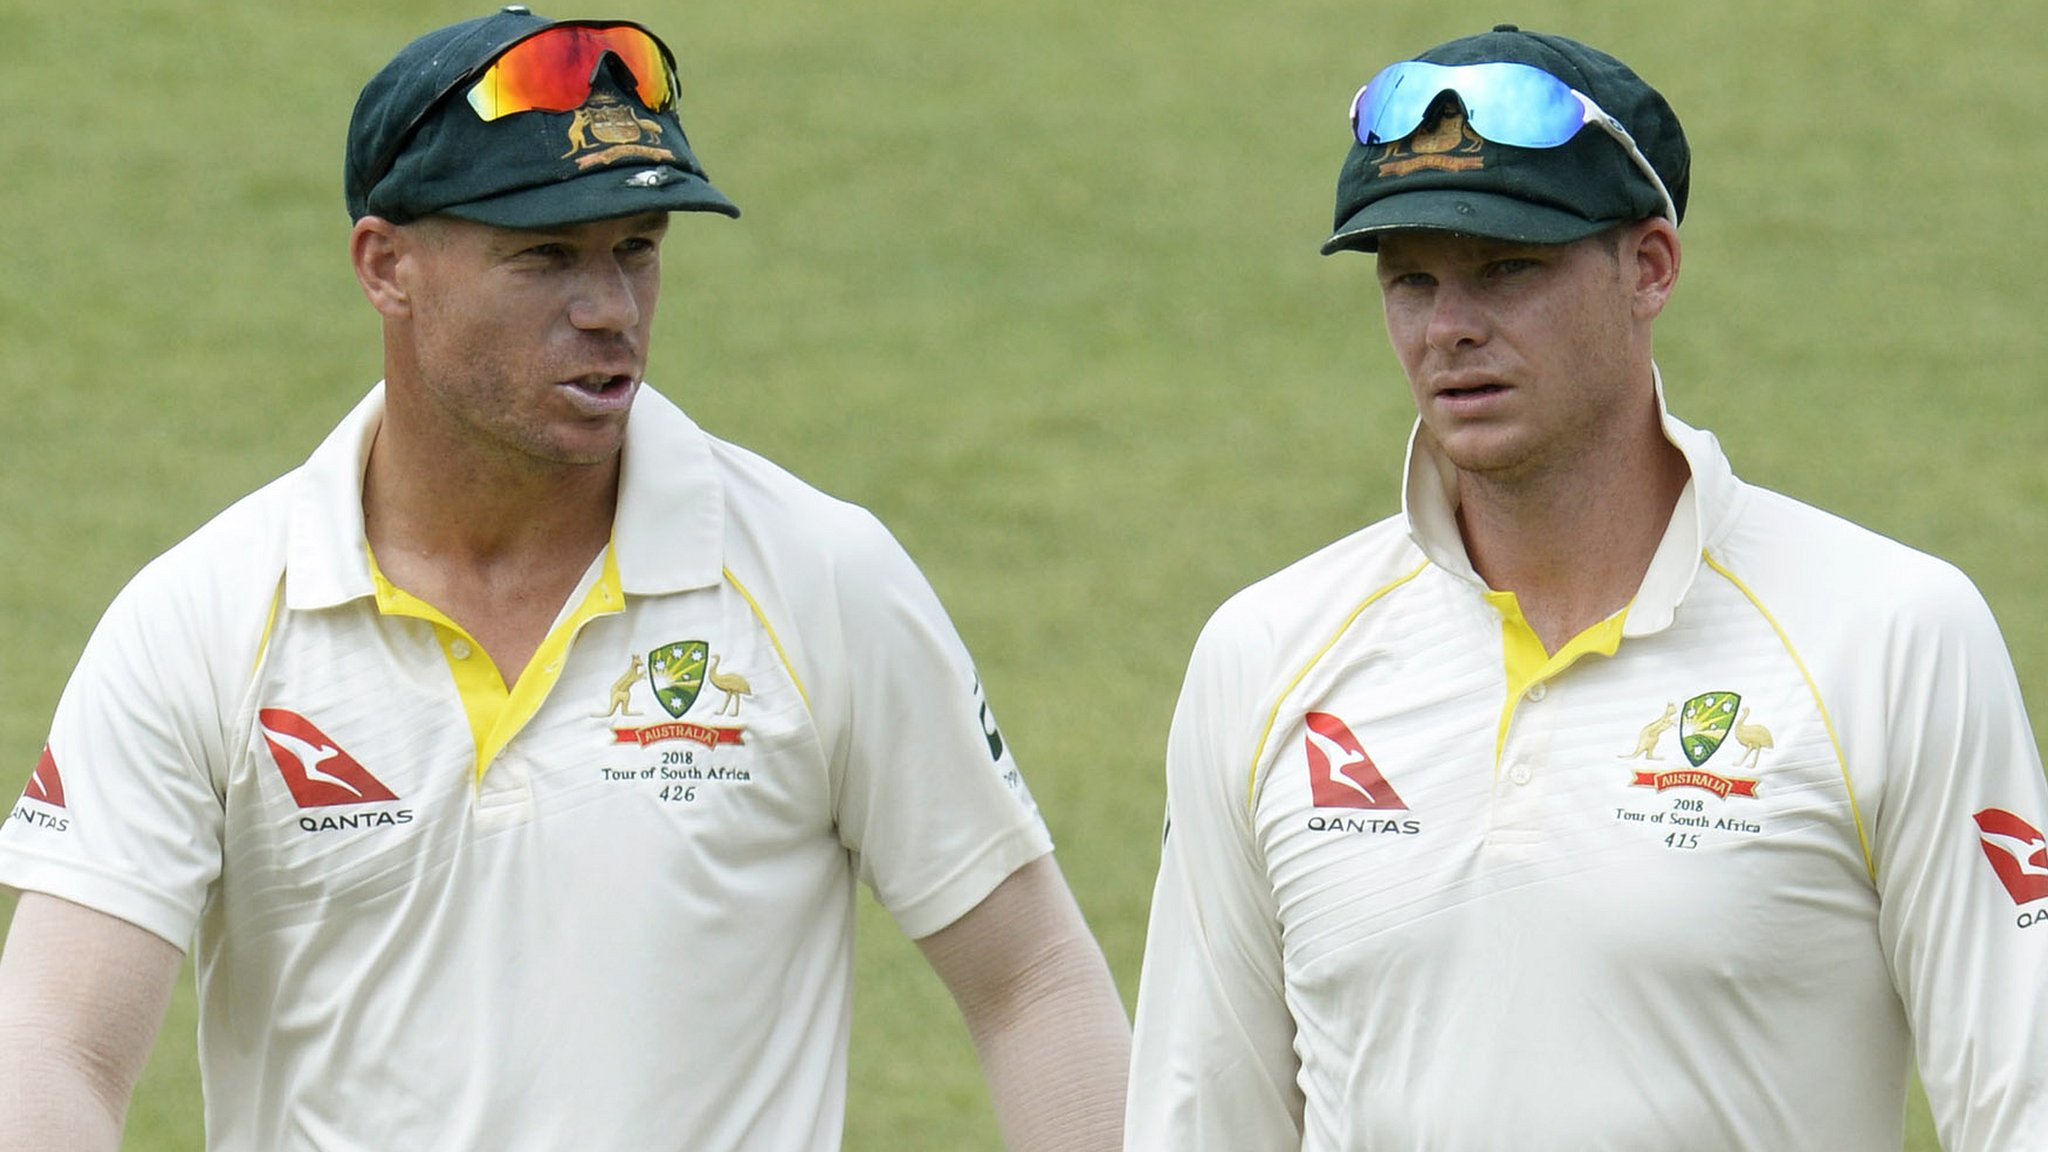 'Like two brothers coming home' - Smith & Warner reunite with Australia squad